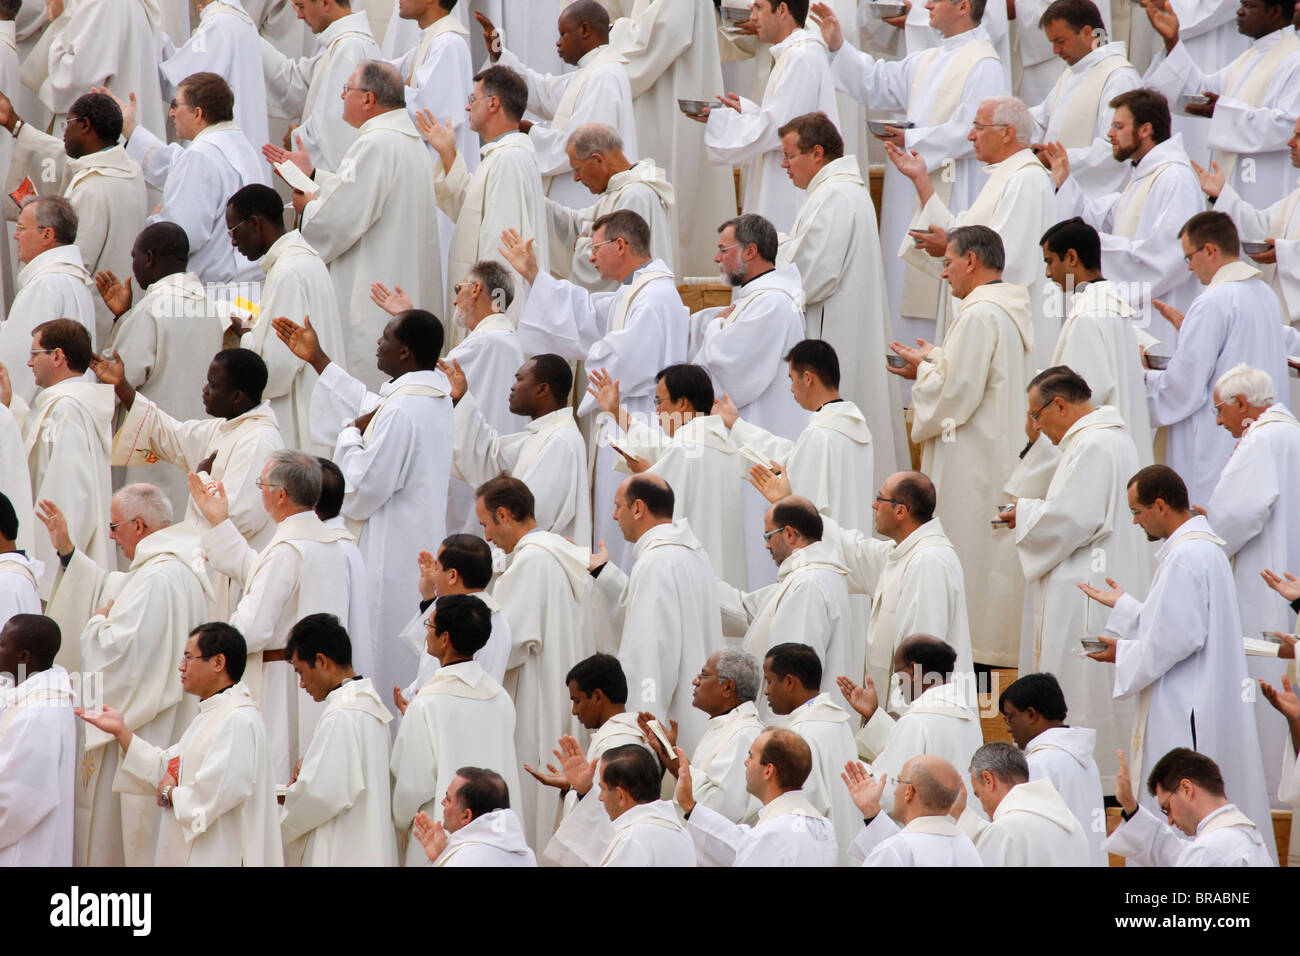 Catholic Priests In White Robes High Resolution Stock Photography And Images Alamy